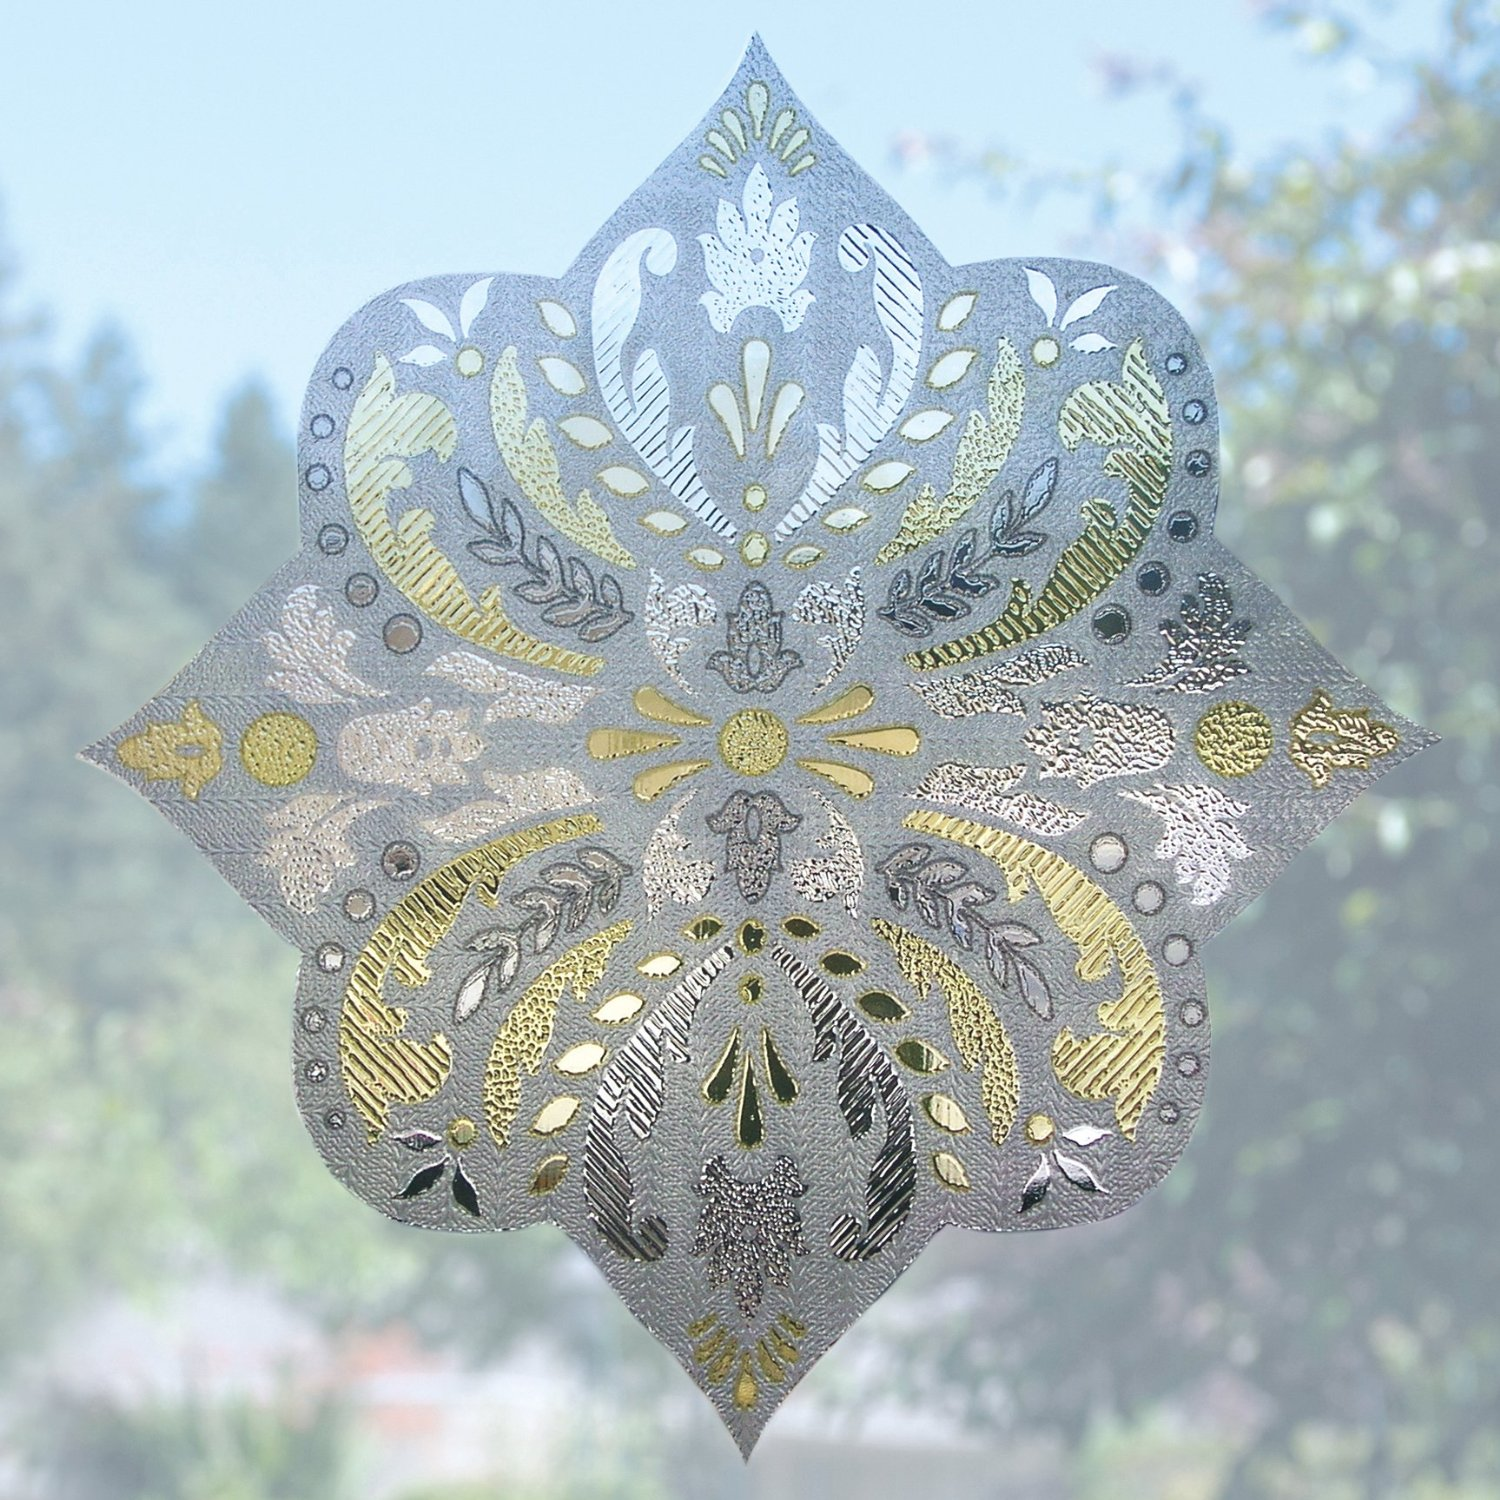 chic 02 3016 Chateau Sidelight artscape window film for window decor ideas